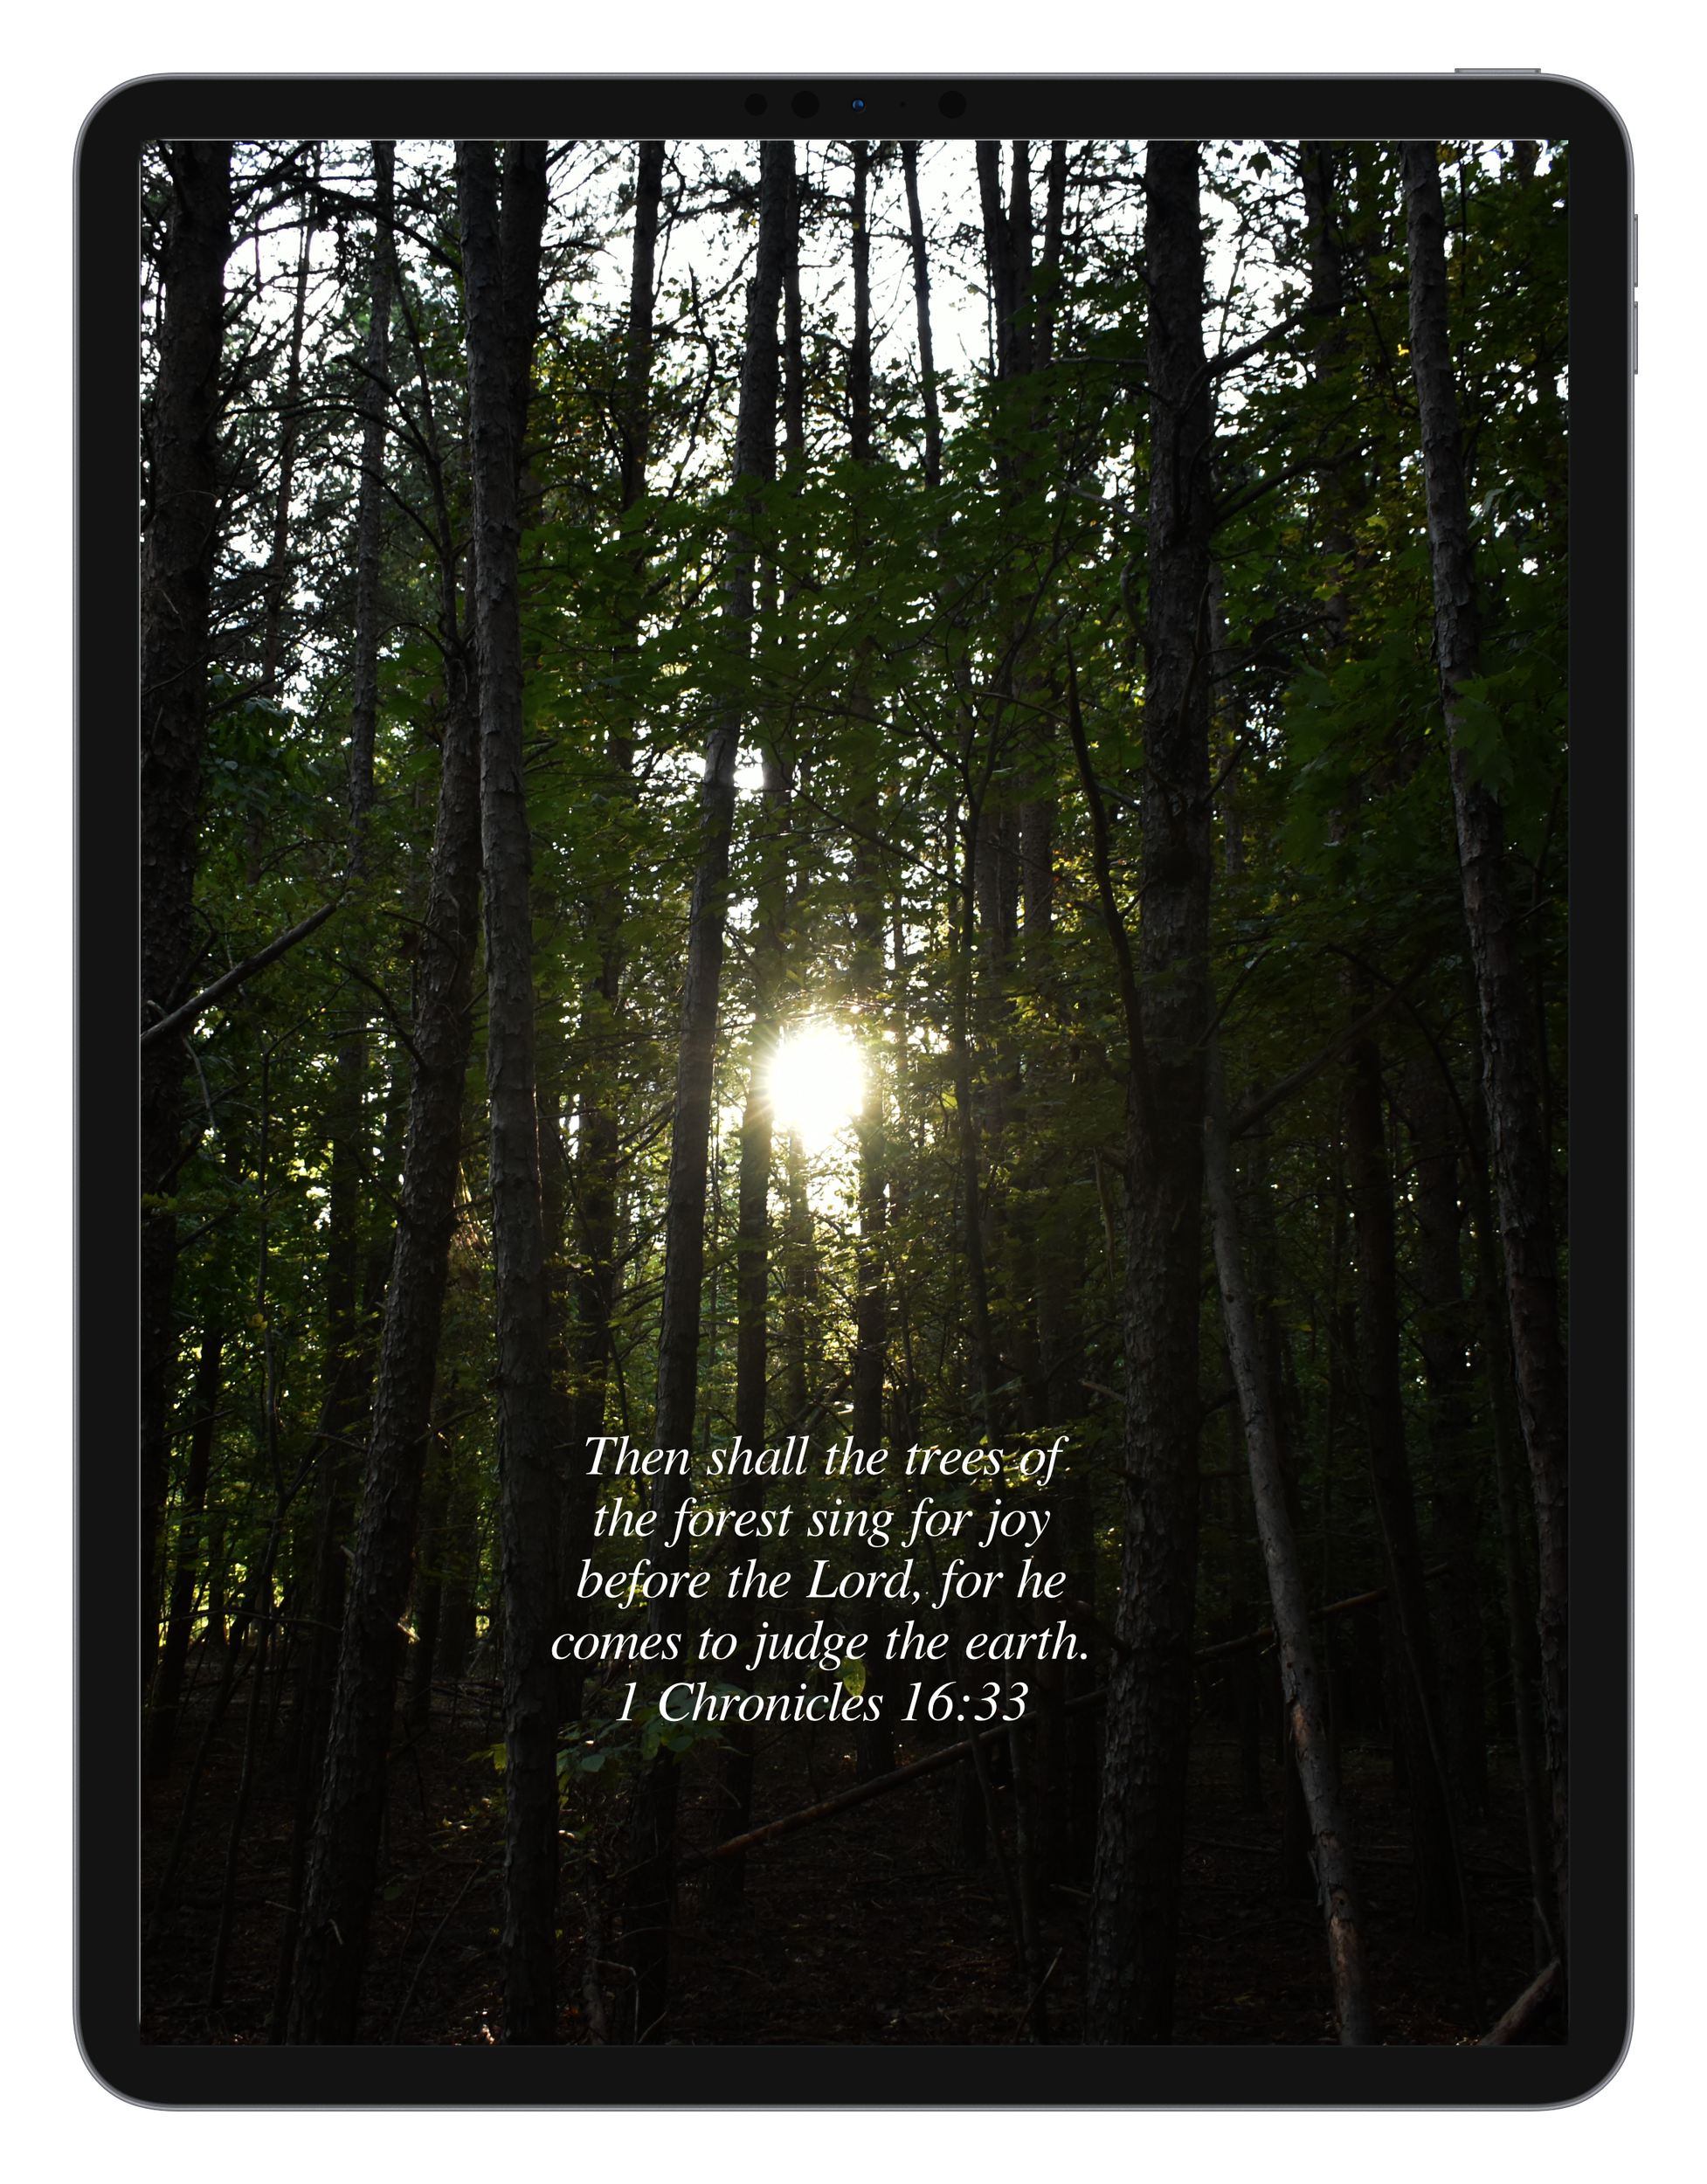 1 Chronicles 16:33 by Biblical Wallpapers